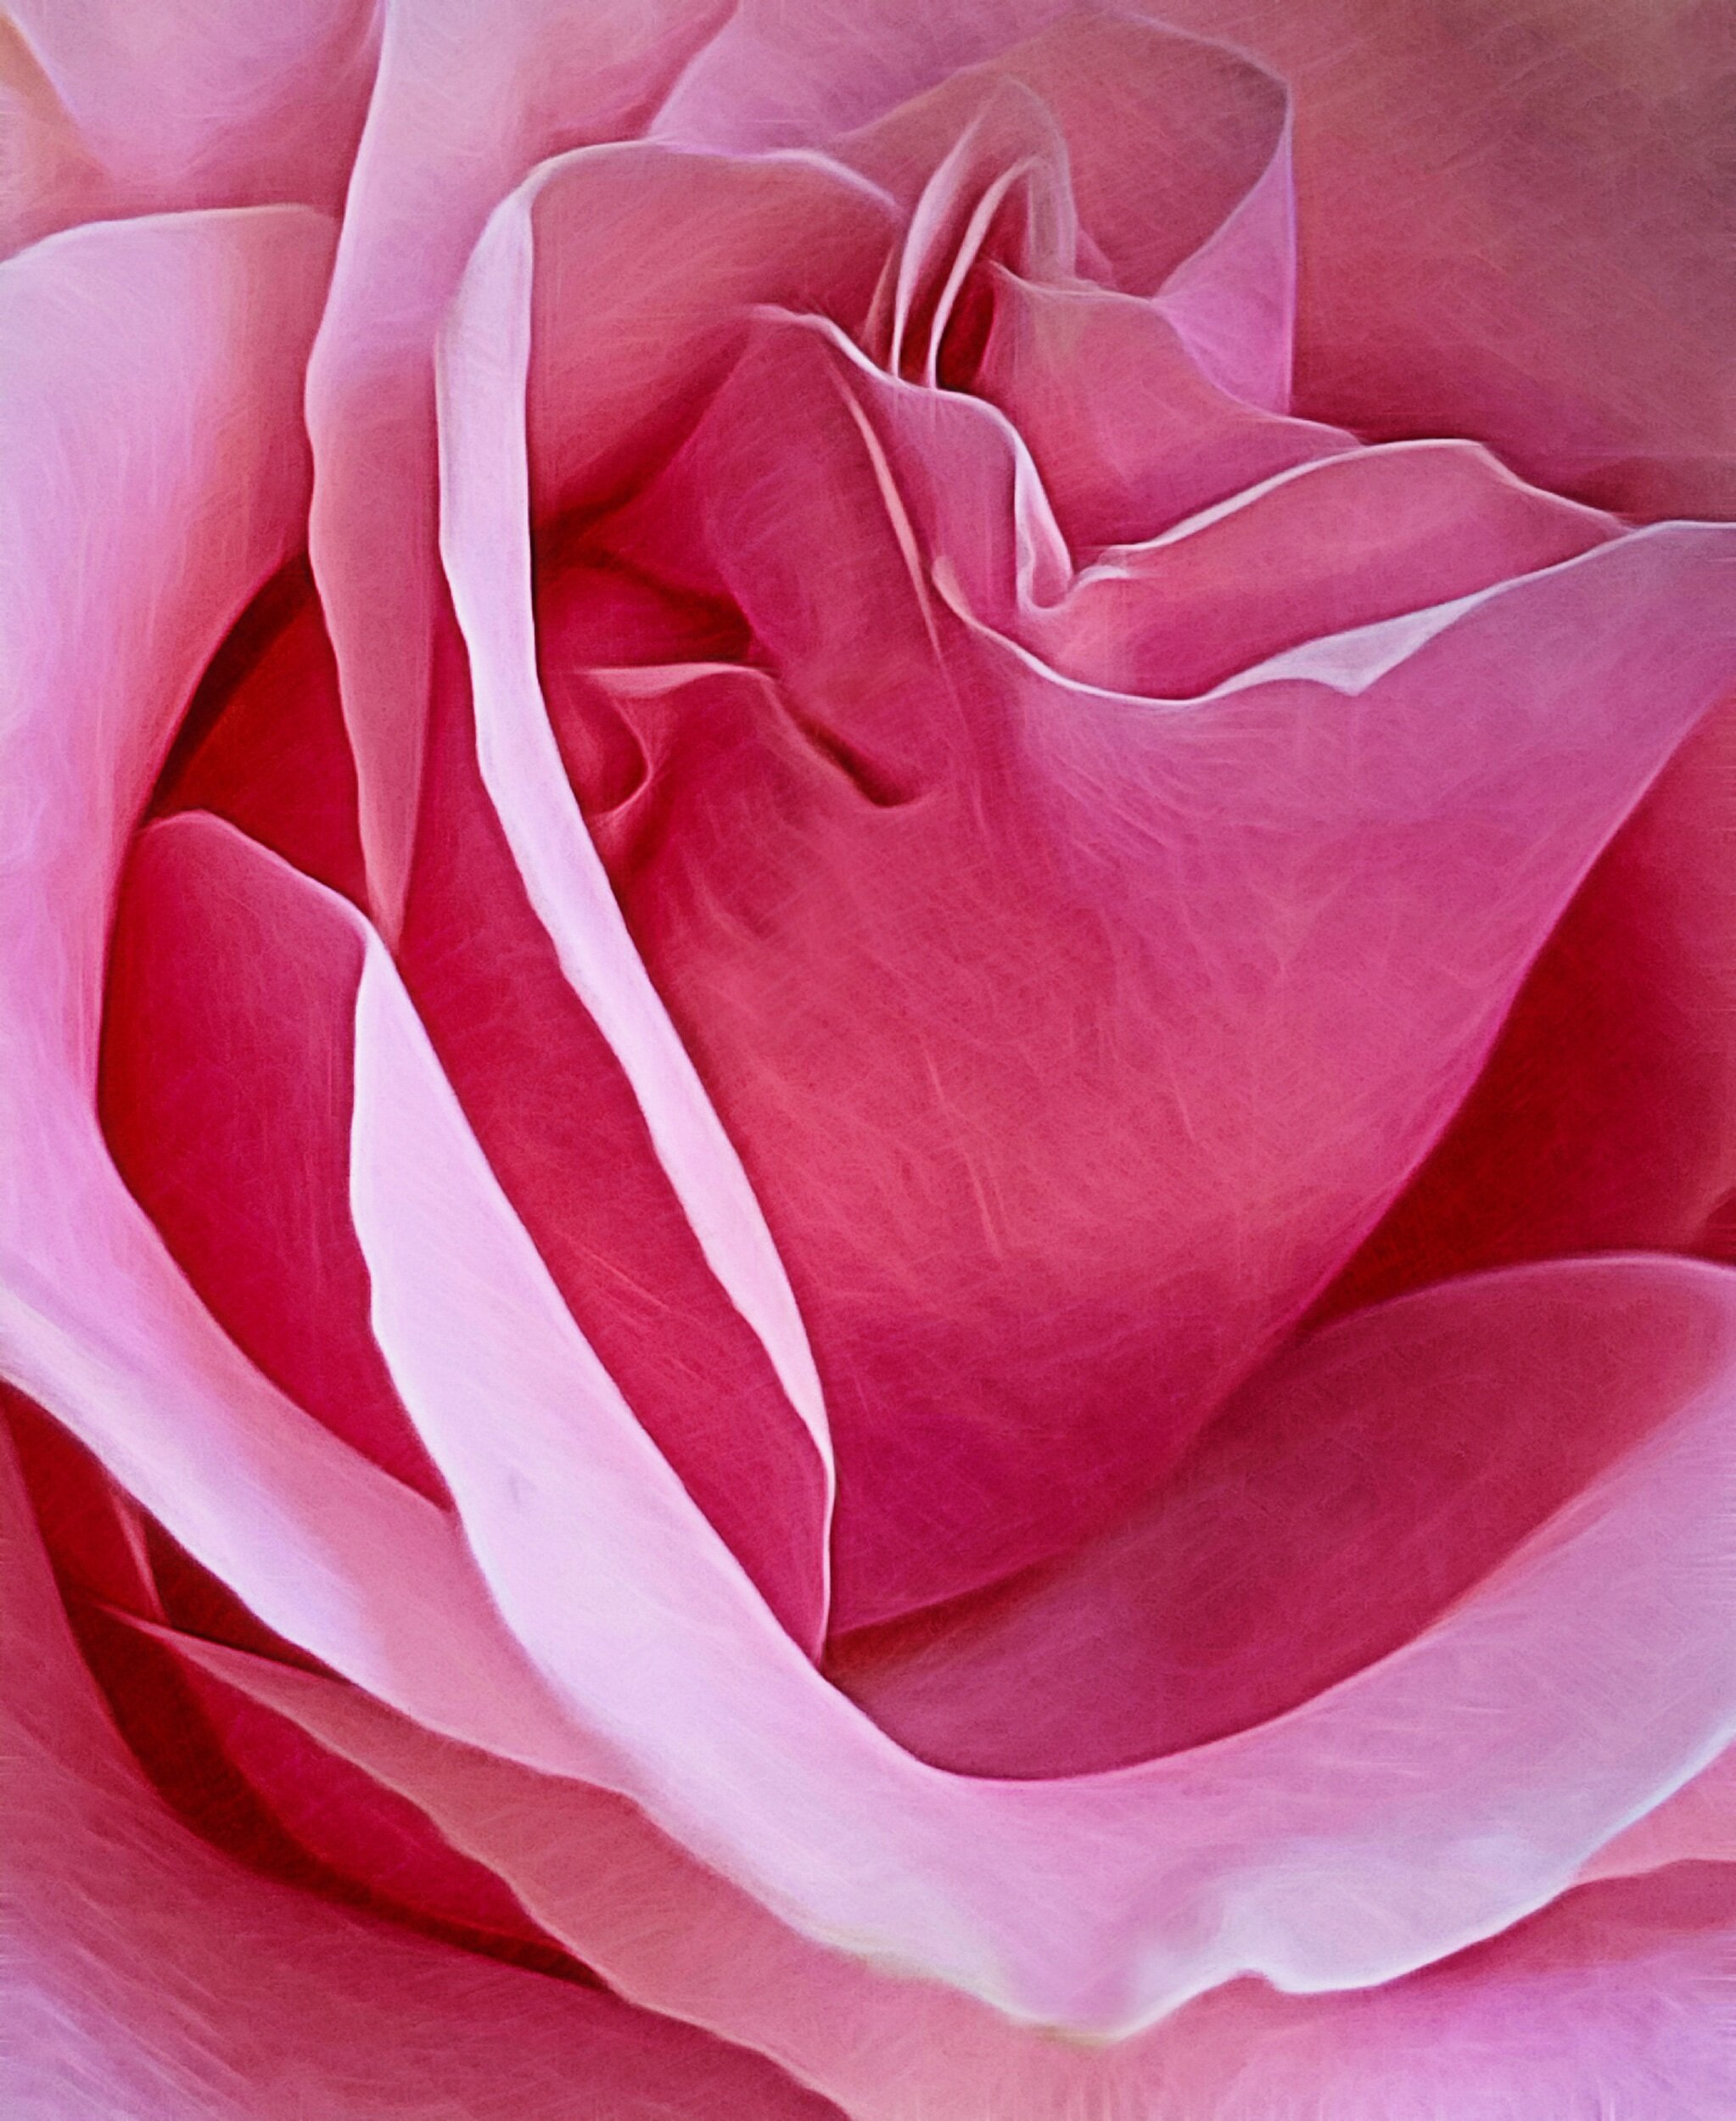 September 21, 2019 - A beautiful rose in honor of today — the International Day of Peace.